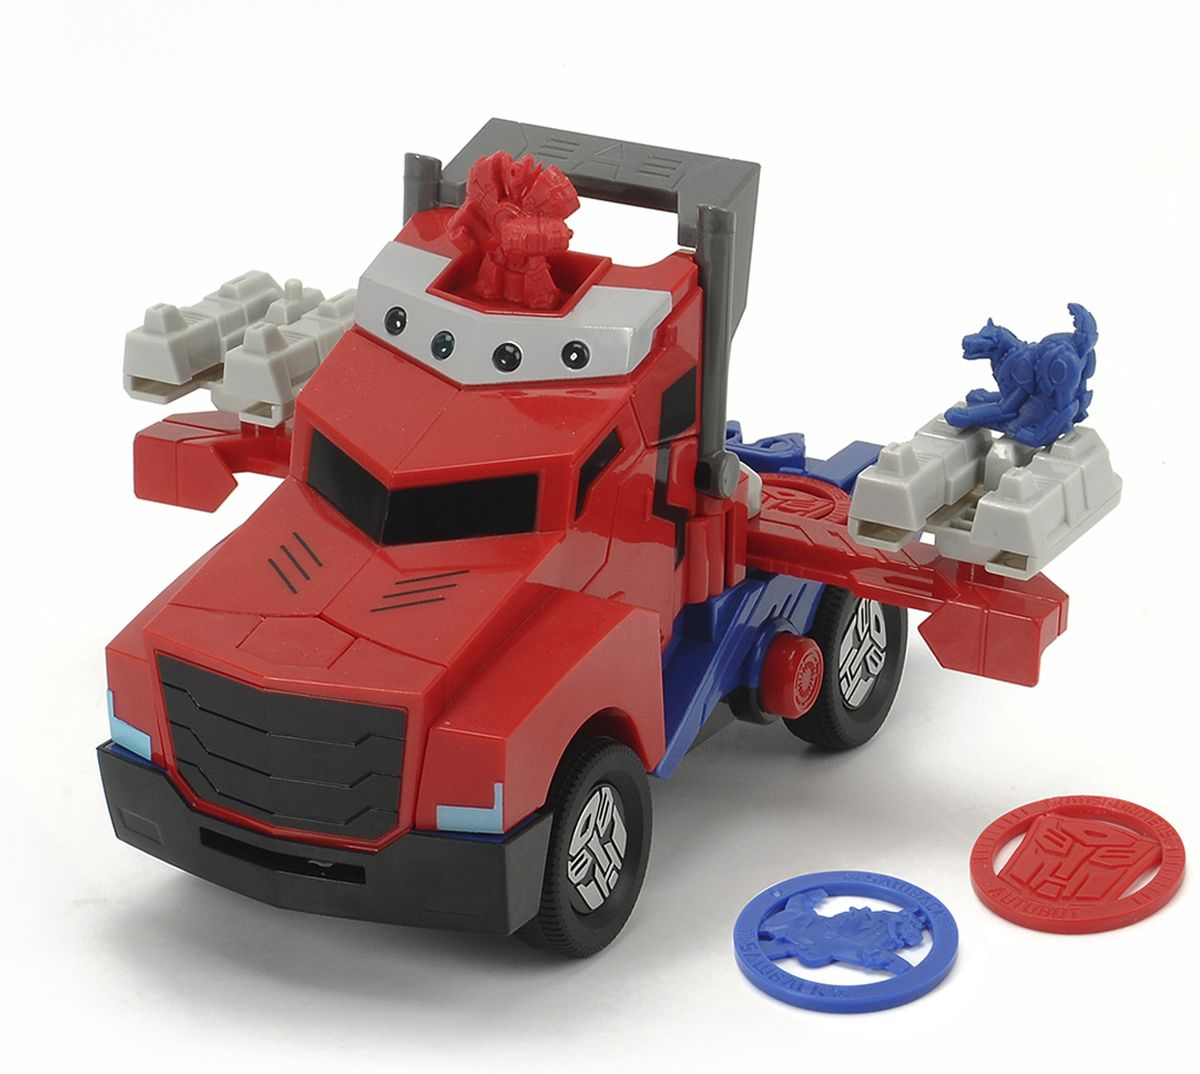 Dickie Toys Машинка-трансформер Боевой трейлер Optimus Prime rid dark optimus prime nemesis prime car robot classic toys for boys action figure 12cm with box d0087